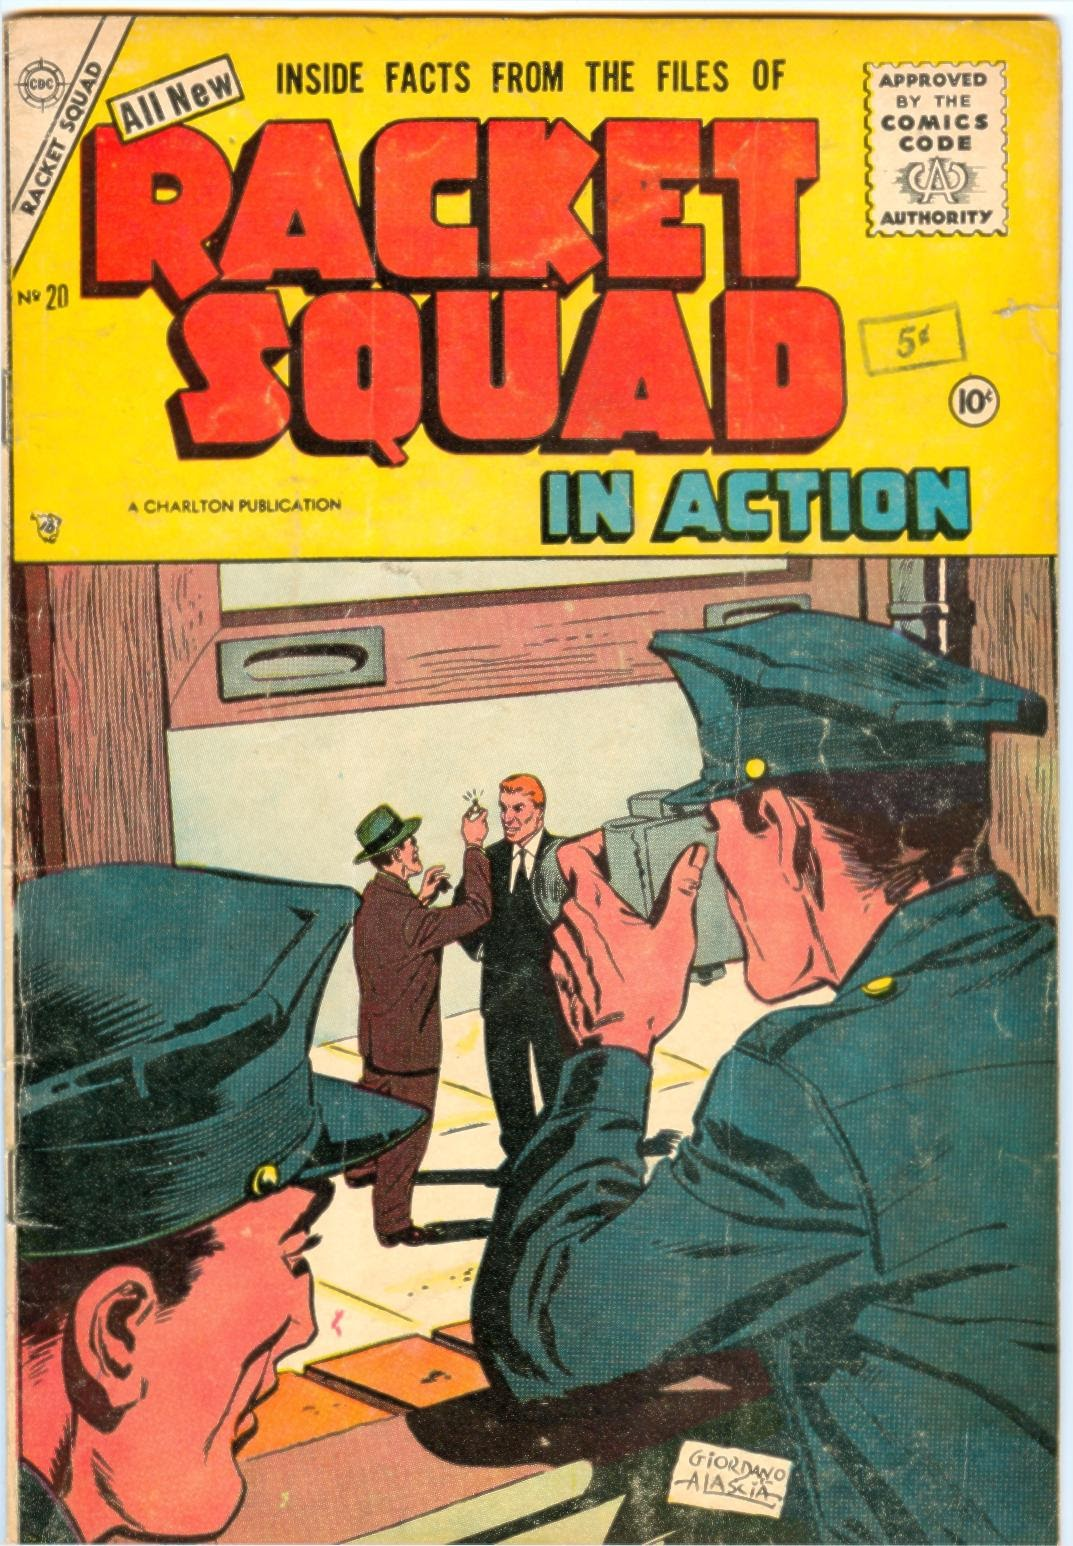 Read online Racket Squad in Action comic -  Issue #20 - 1